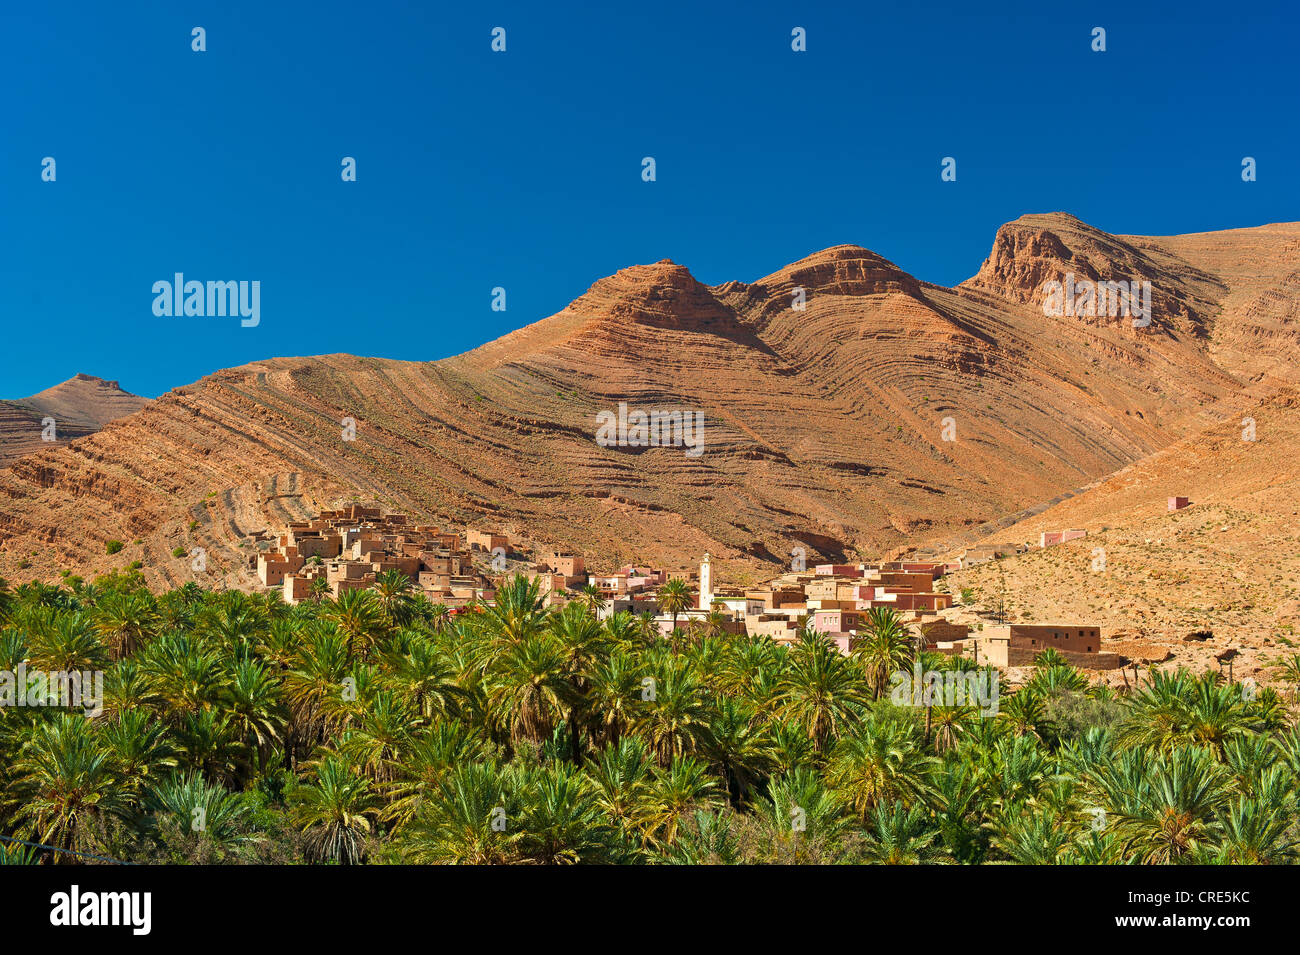 Typical cuesta landscape, mountain slopes characterized by erosion, with small settlements and date palms, Ait Mansour Stock Photo